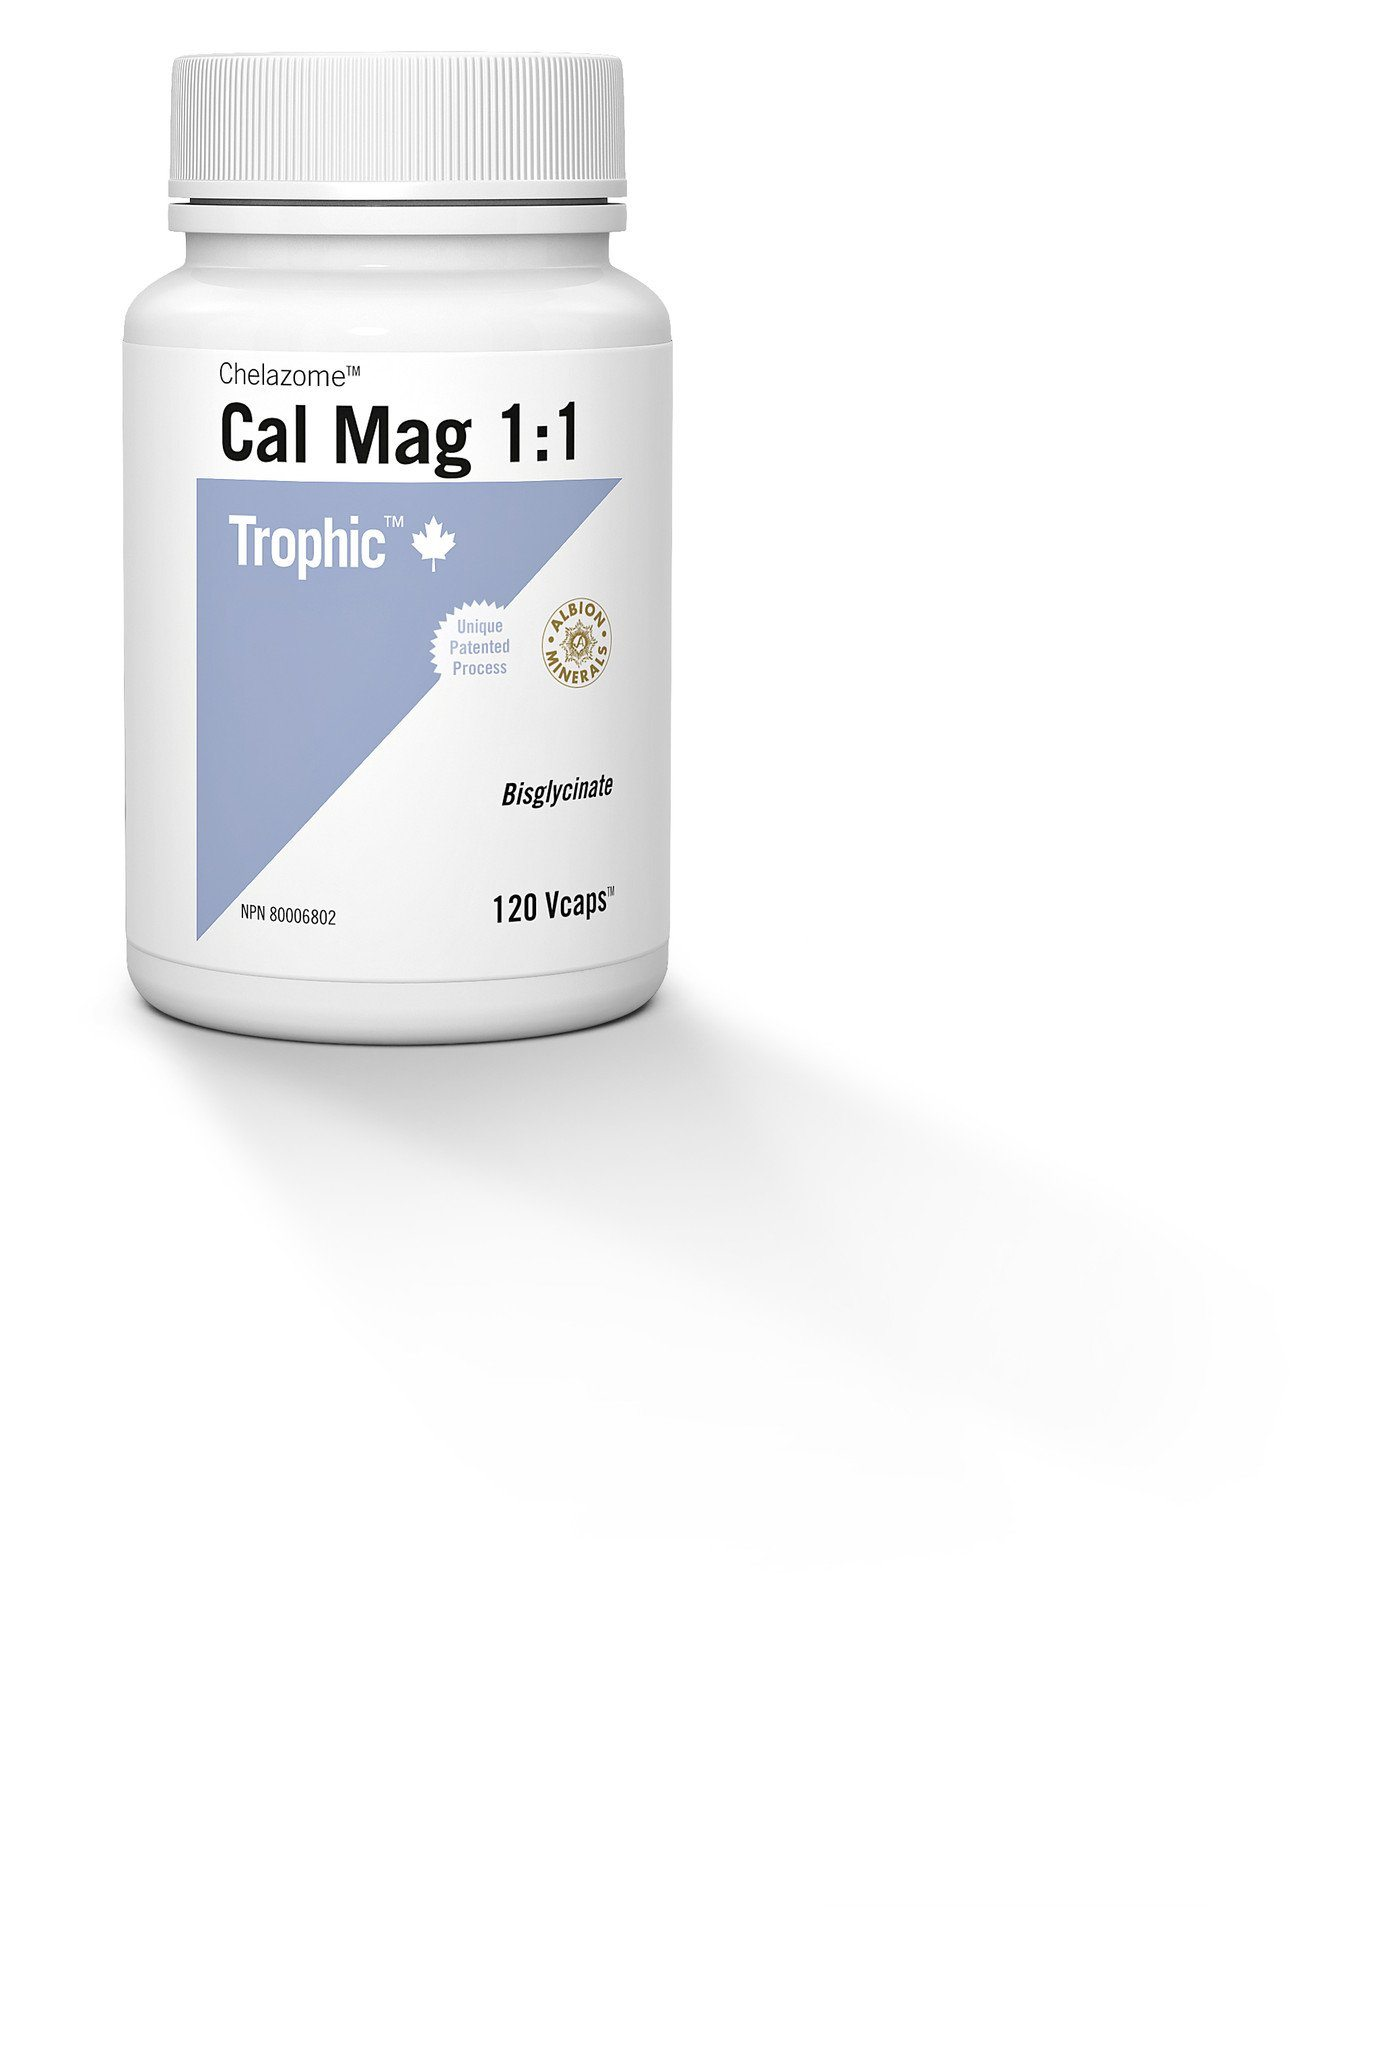 Supplements & Vitamins - Trophic - Cal Mag 1:1 (Chelazome), 120 Vcaps